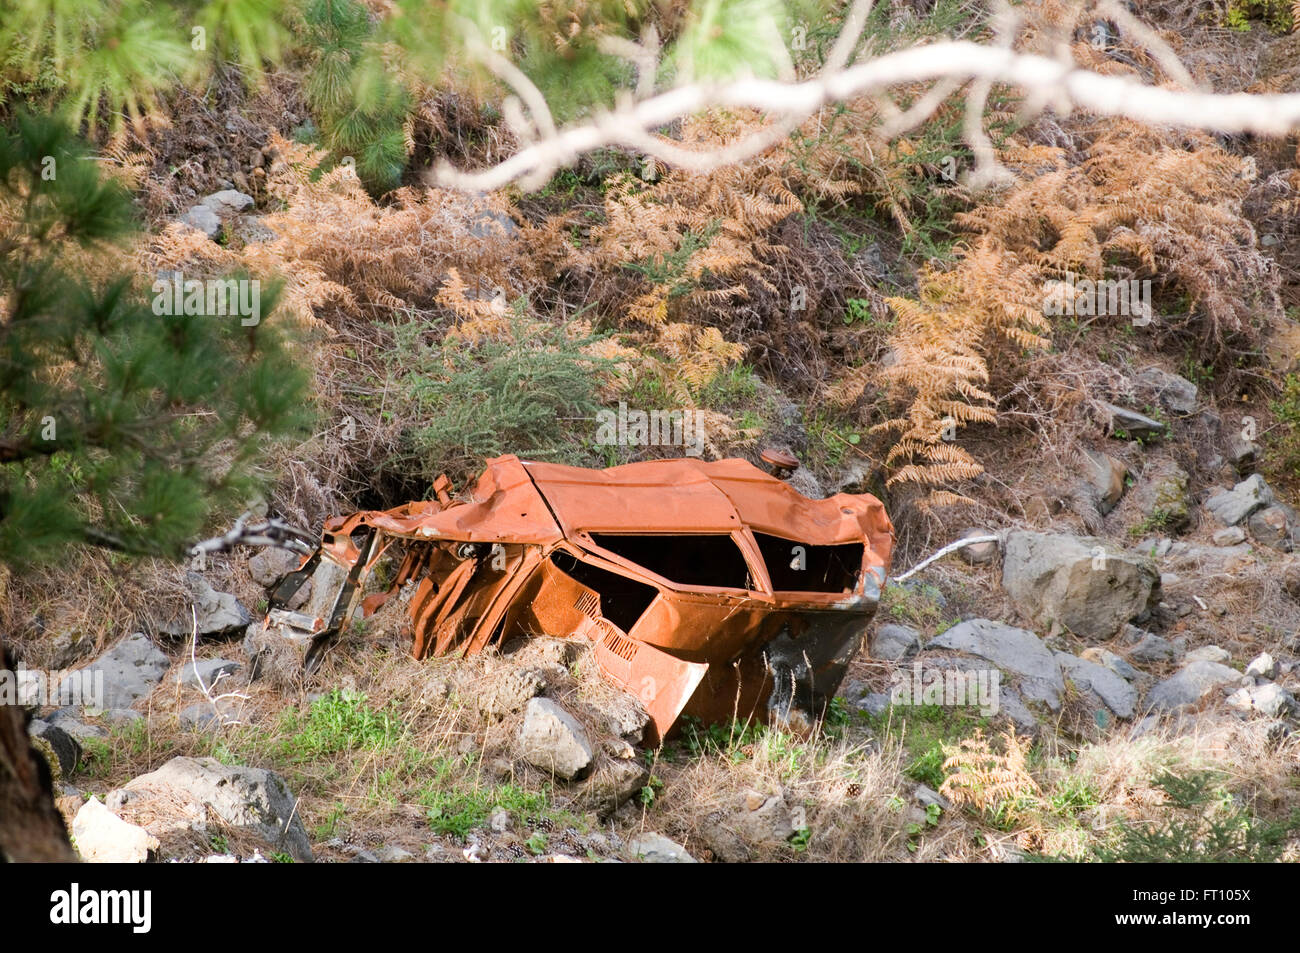 crashed car cars crash at the bottom of a valley ravine rust rusty junk scrap wreck wrecked insurance no claims - Stock Image